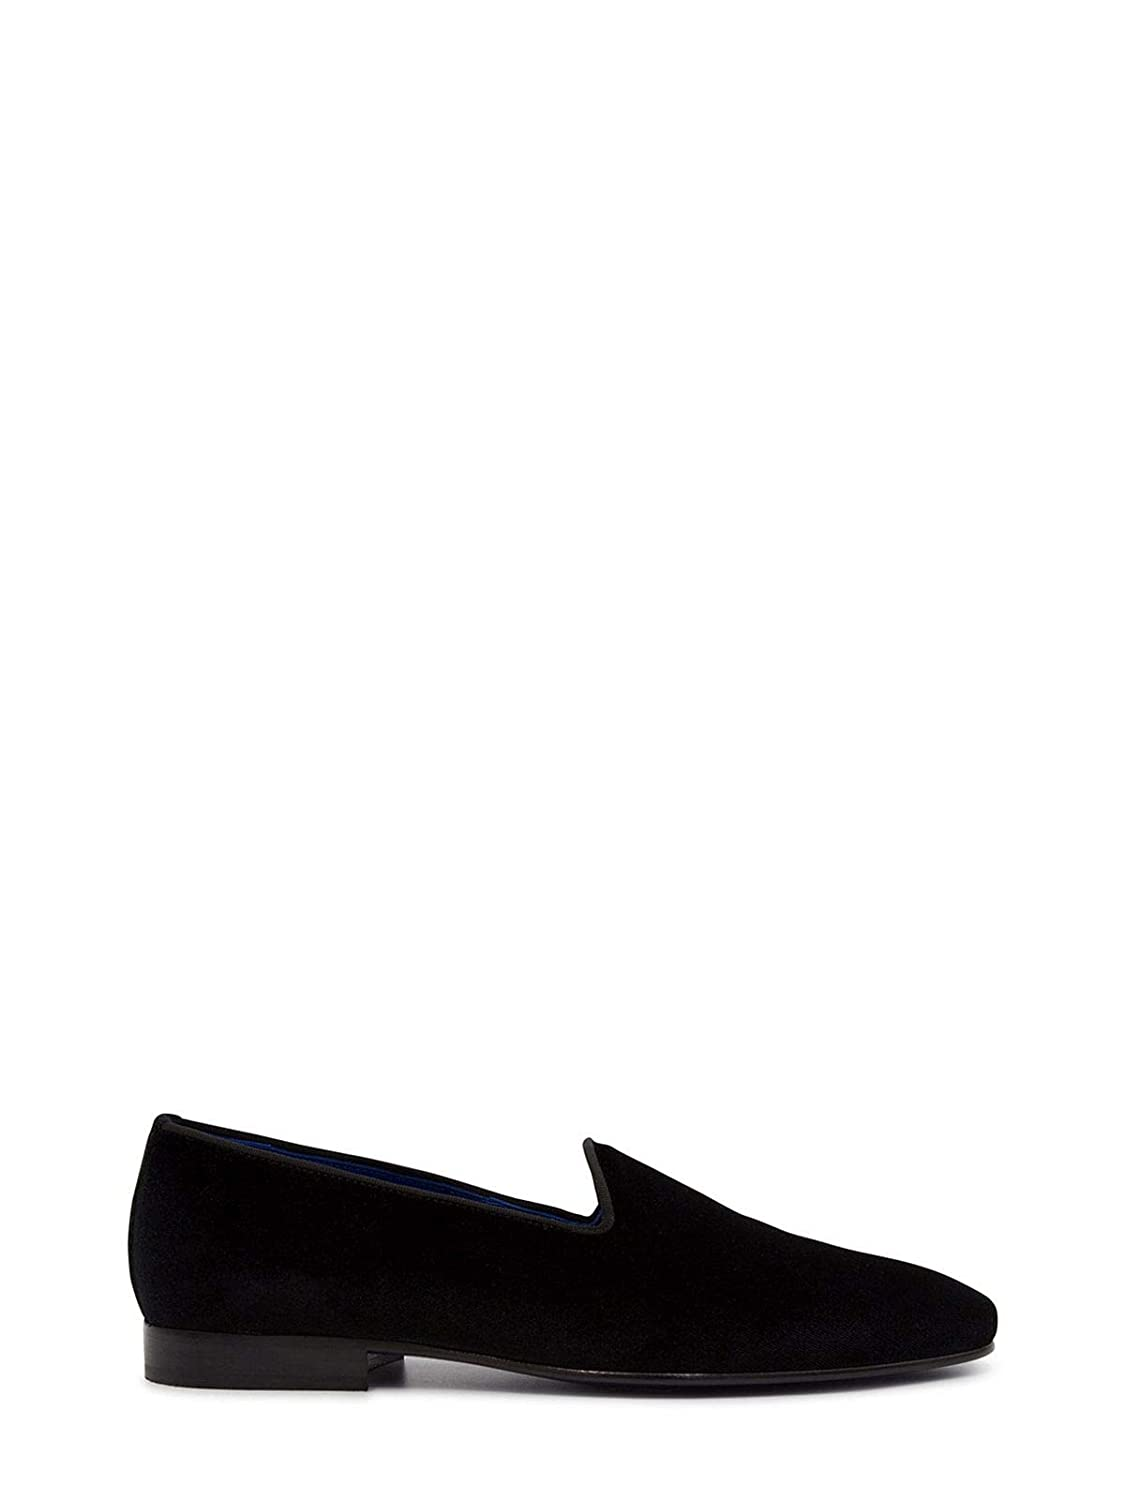 - LEQARANT Men's 700202BLACK Black Suede Loafers